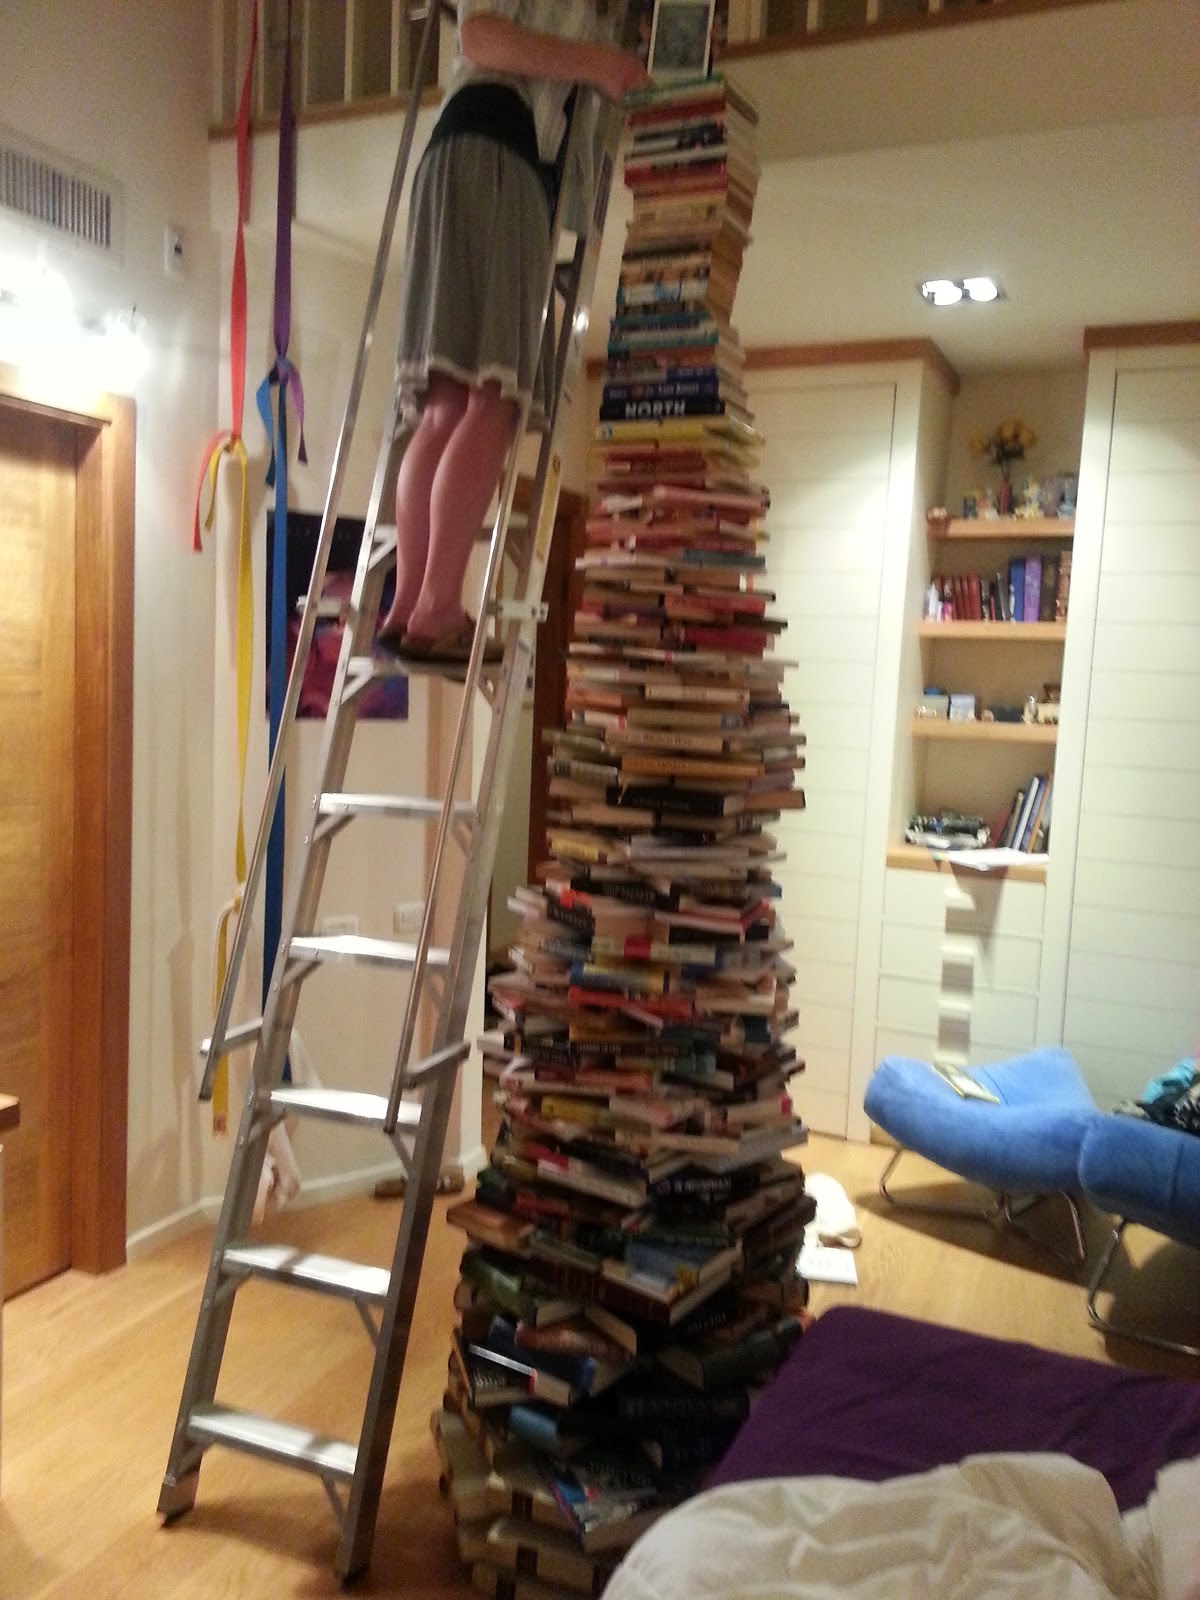 http://mark---lawrence.blogspot.co.uk/2013/04/book-tower.html